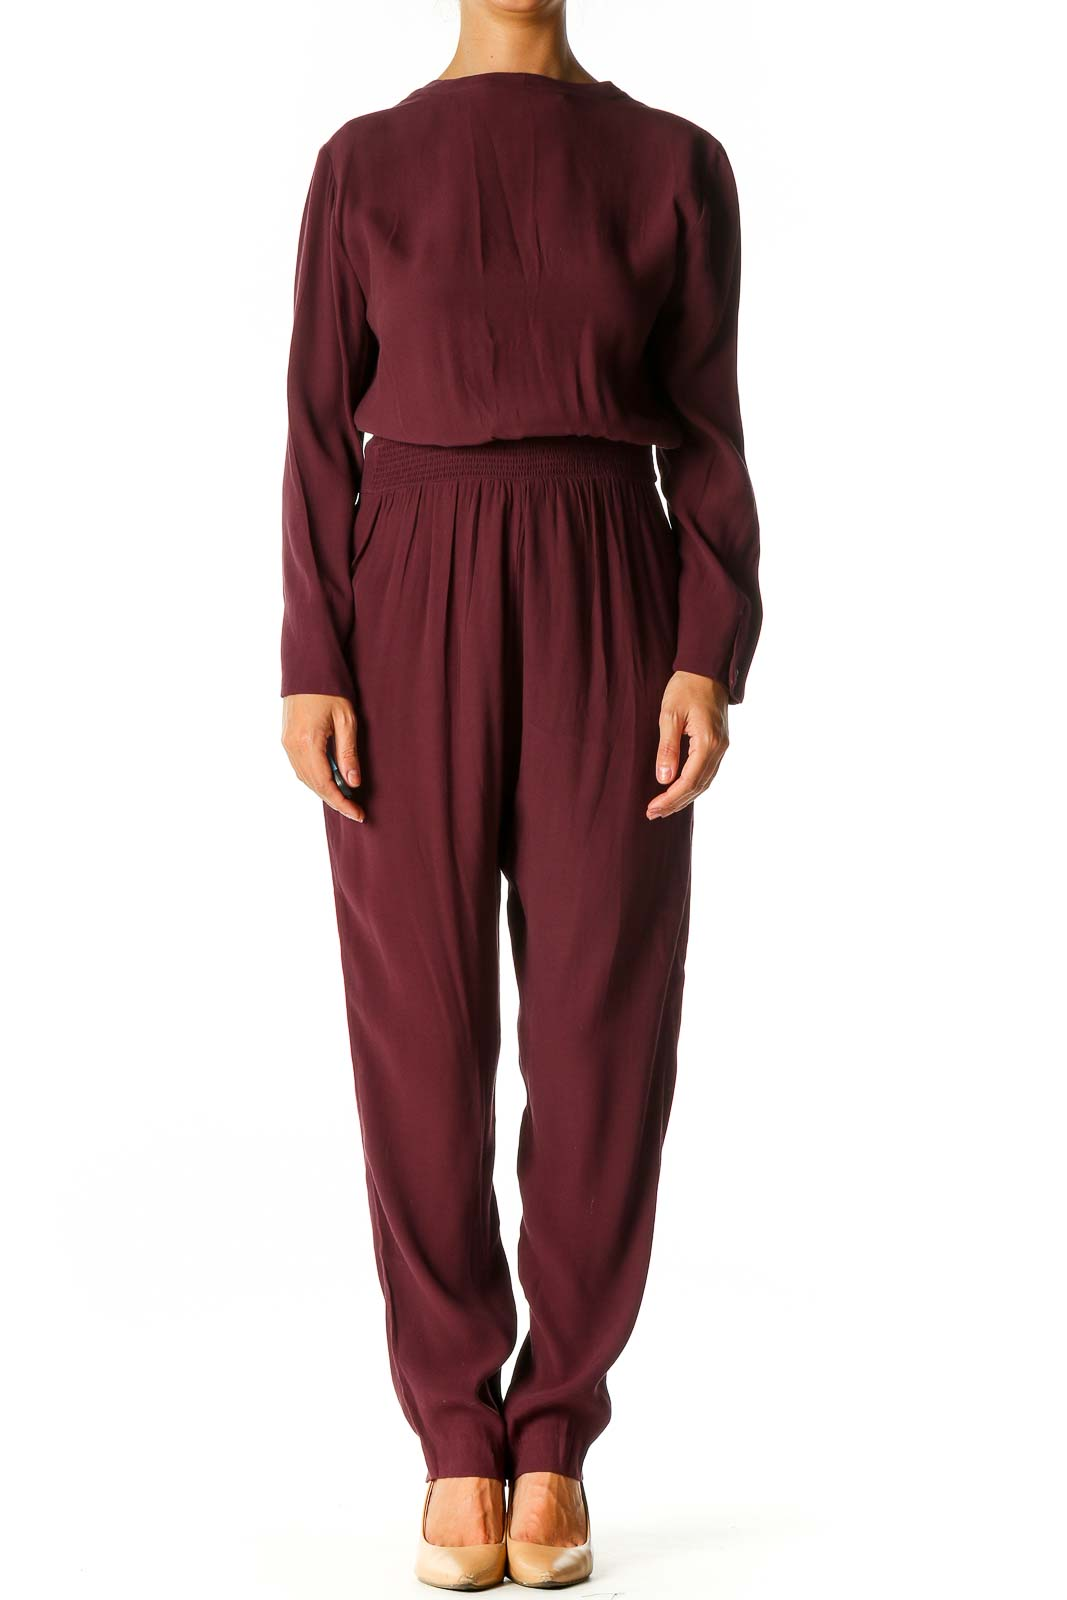 Red Chic Jumpsuit Front